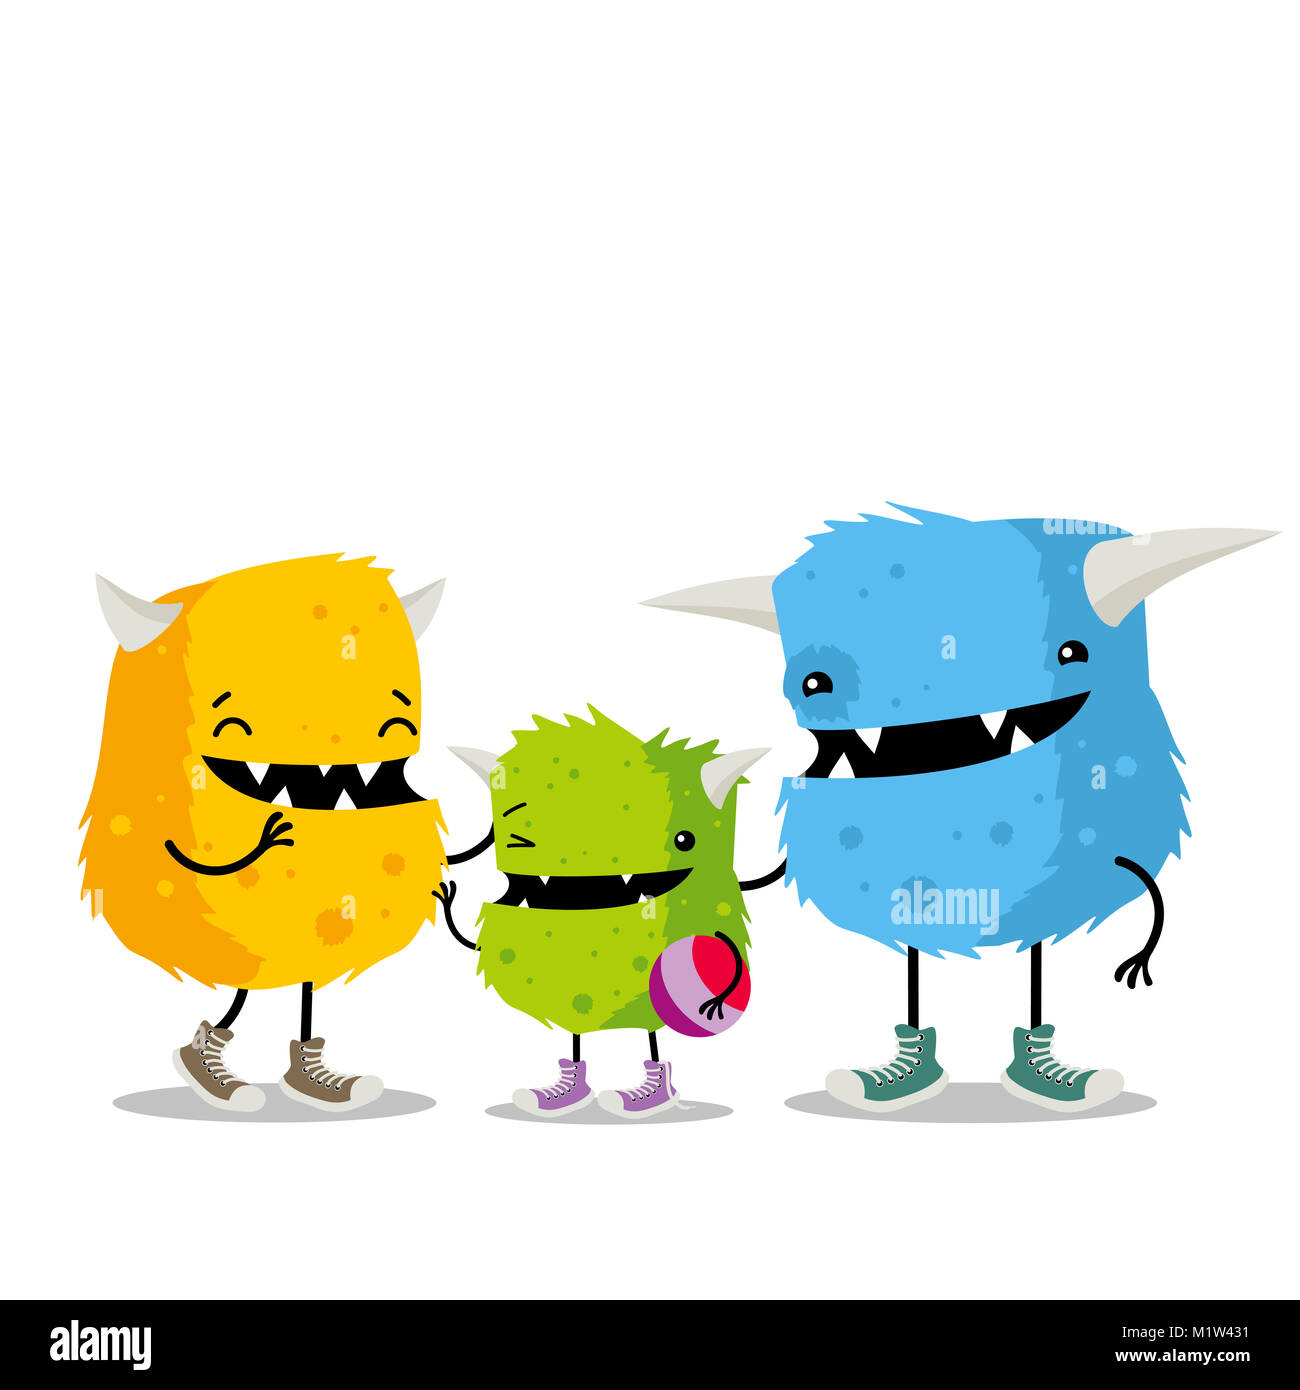 Family Of Three Monsters Yellow Mother Blue Father And Green Child Stock Photo Alamy